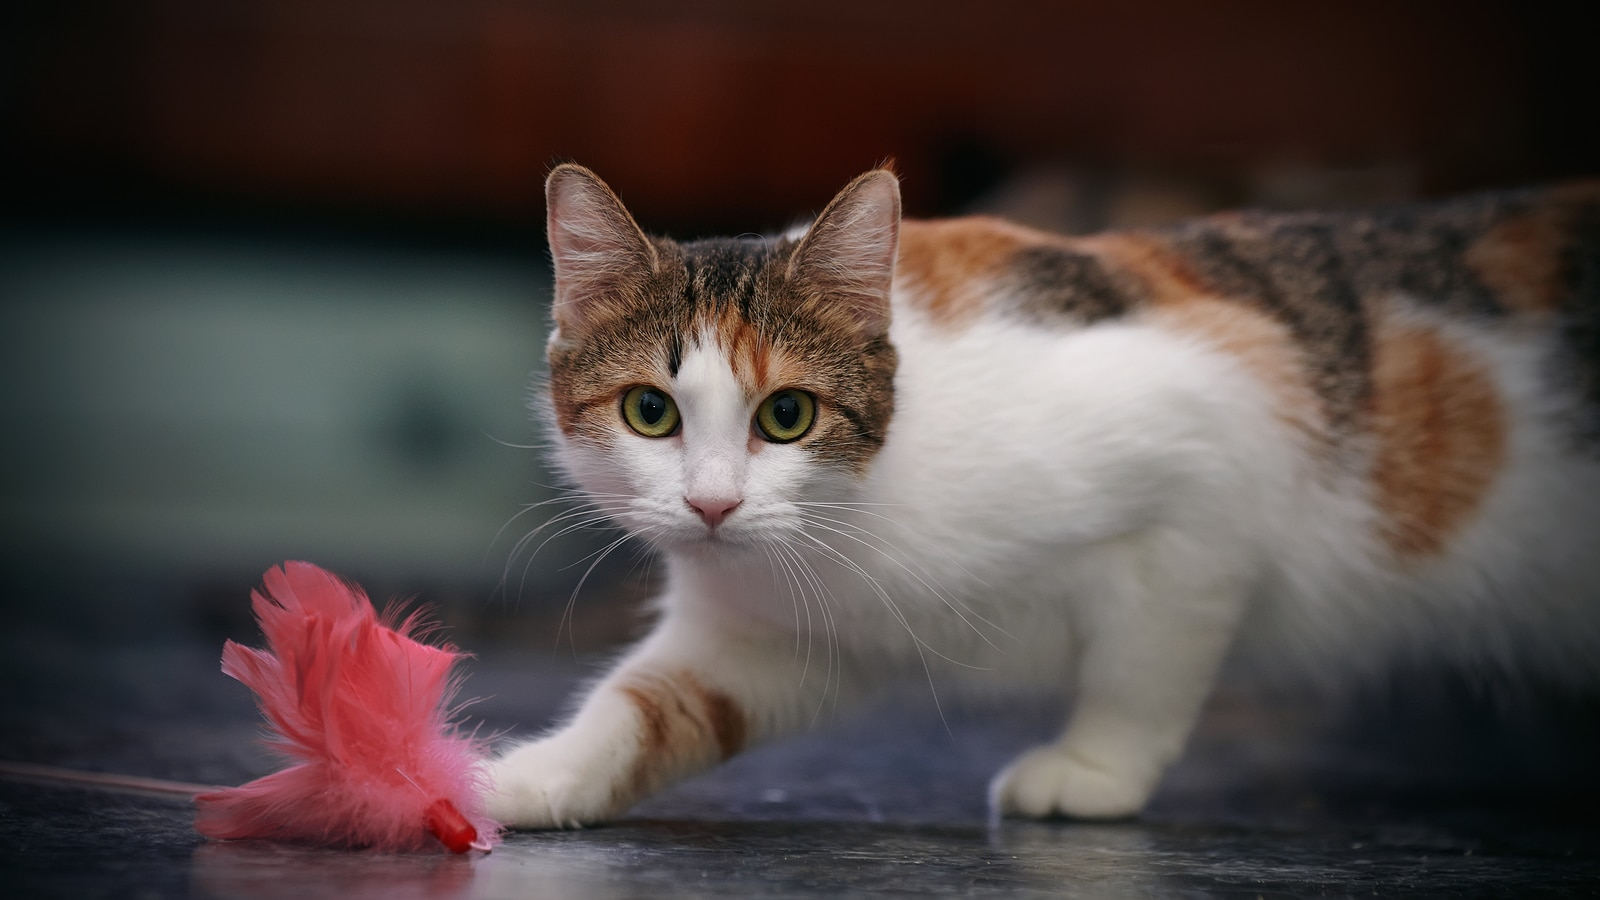 Calico cat chases after pink feather toy